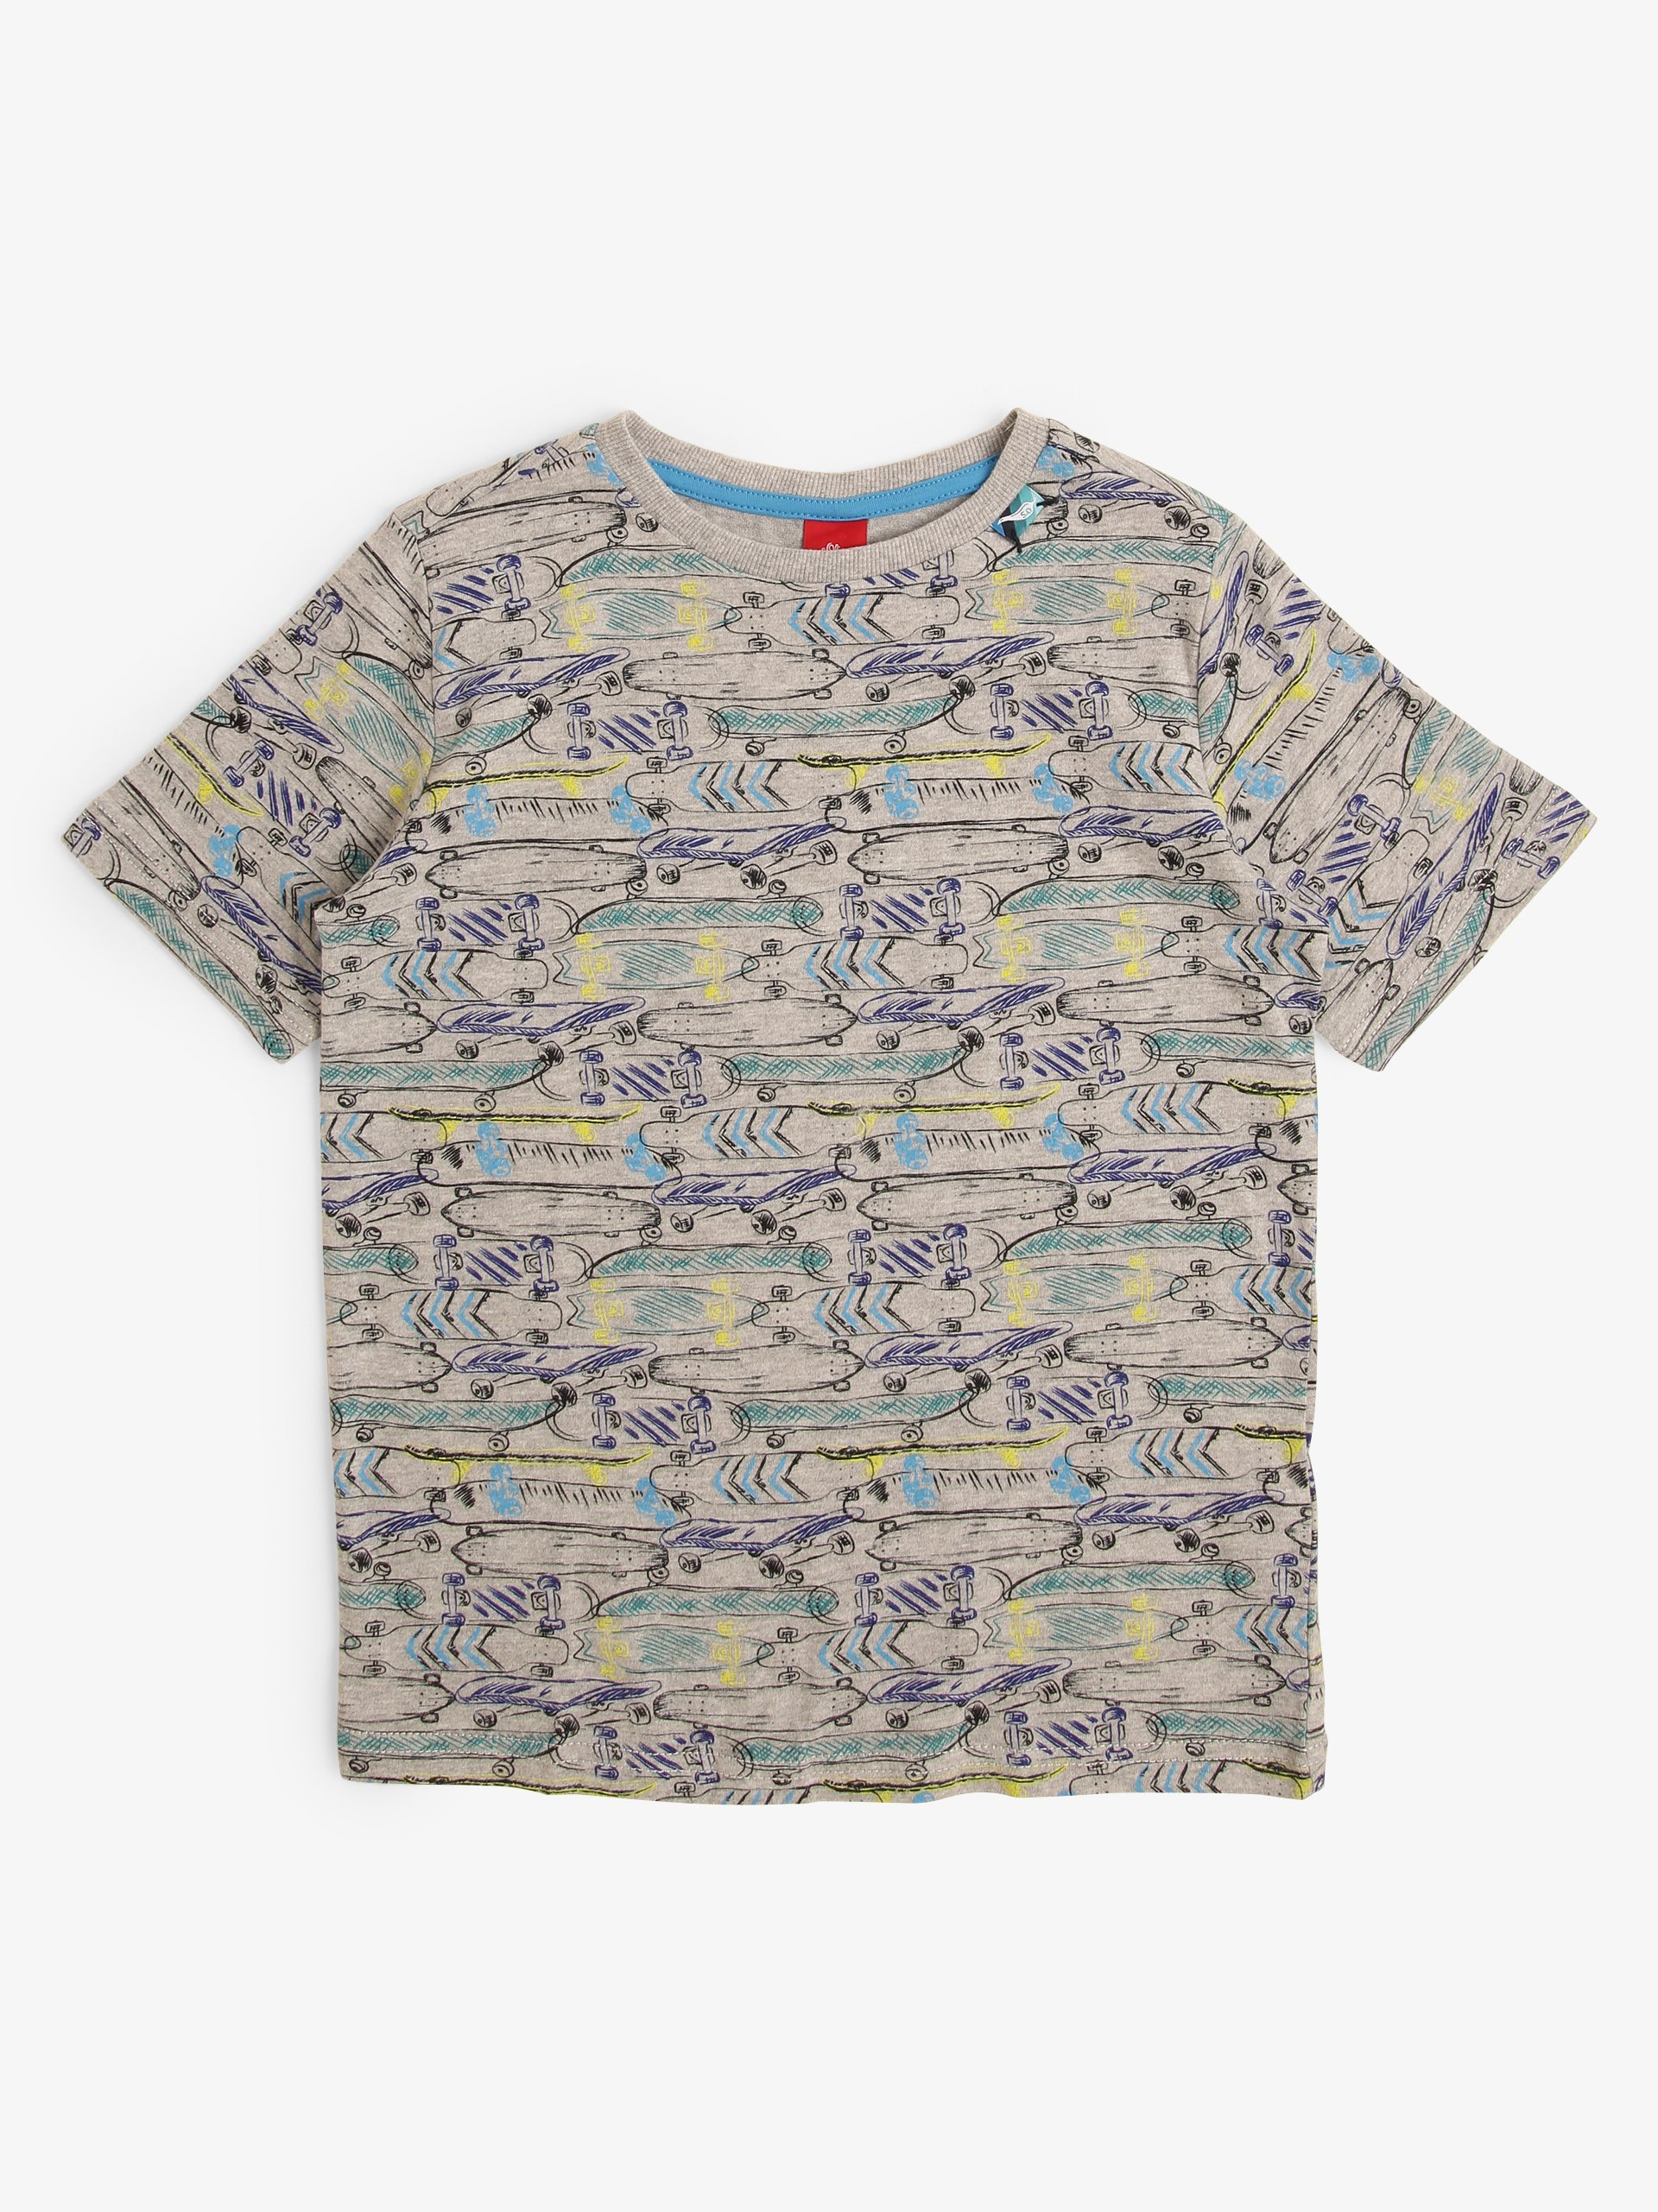 s.Oliver Casual Jungen T-Shirt